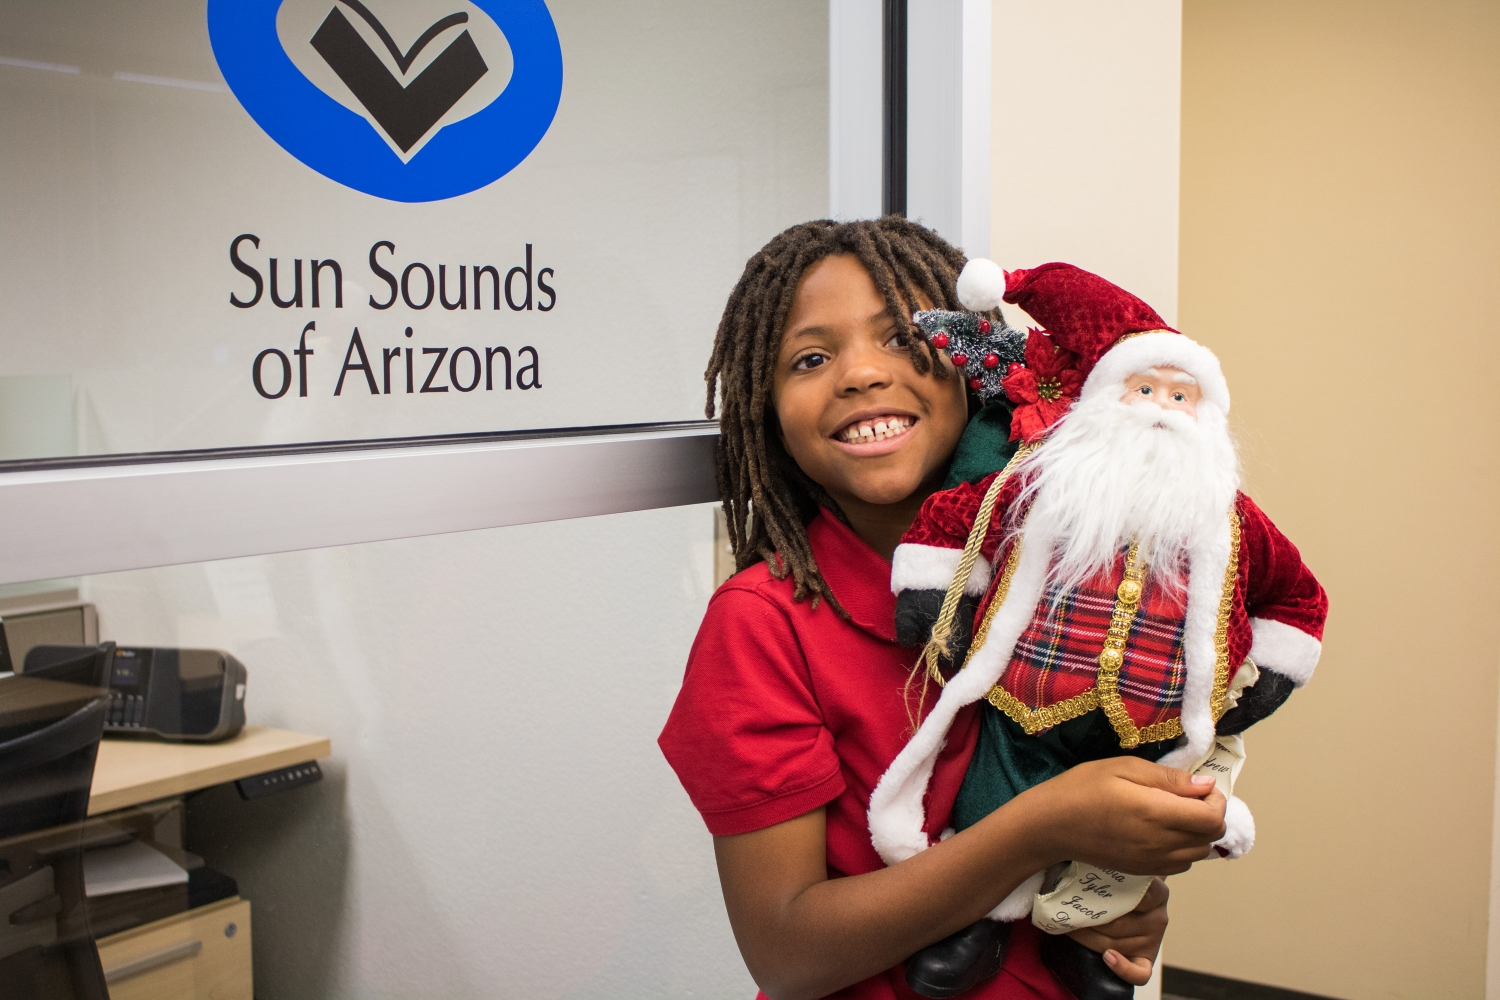 Little girl in red shirt holds a Santa Clause doll